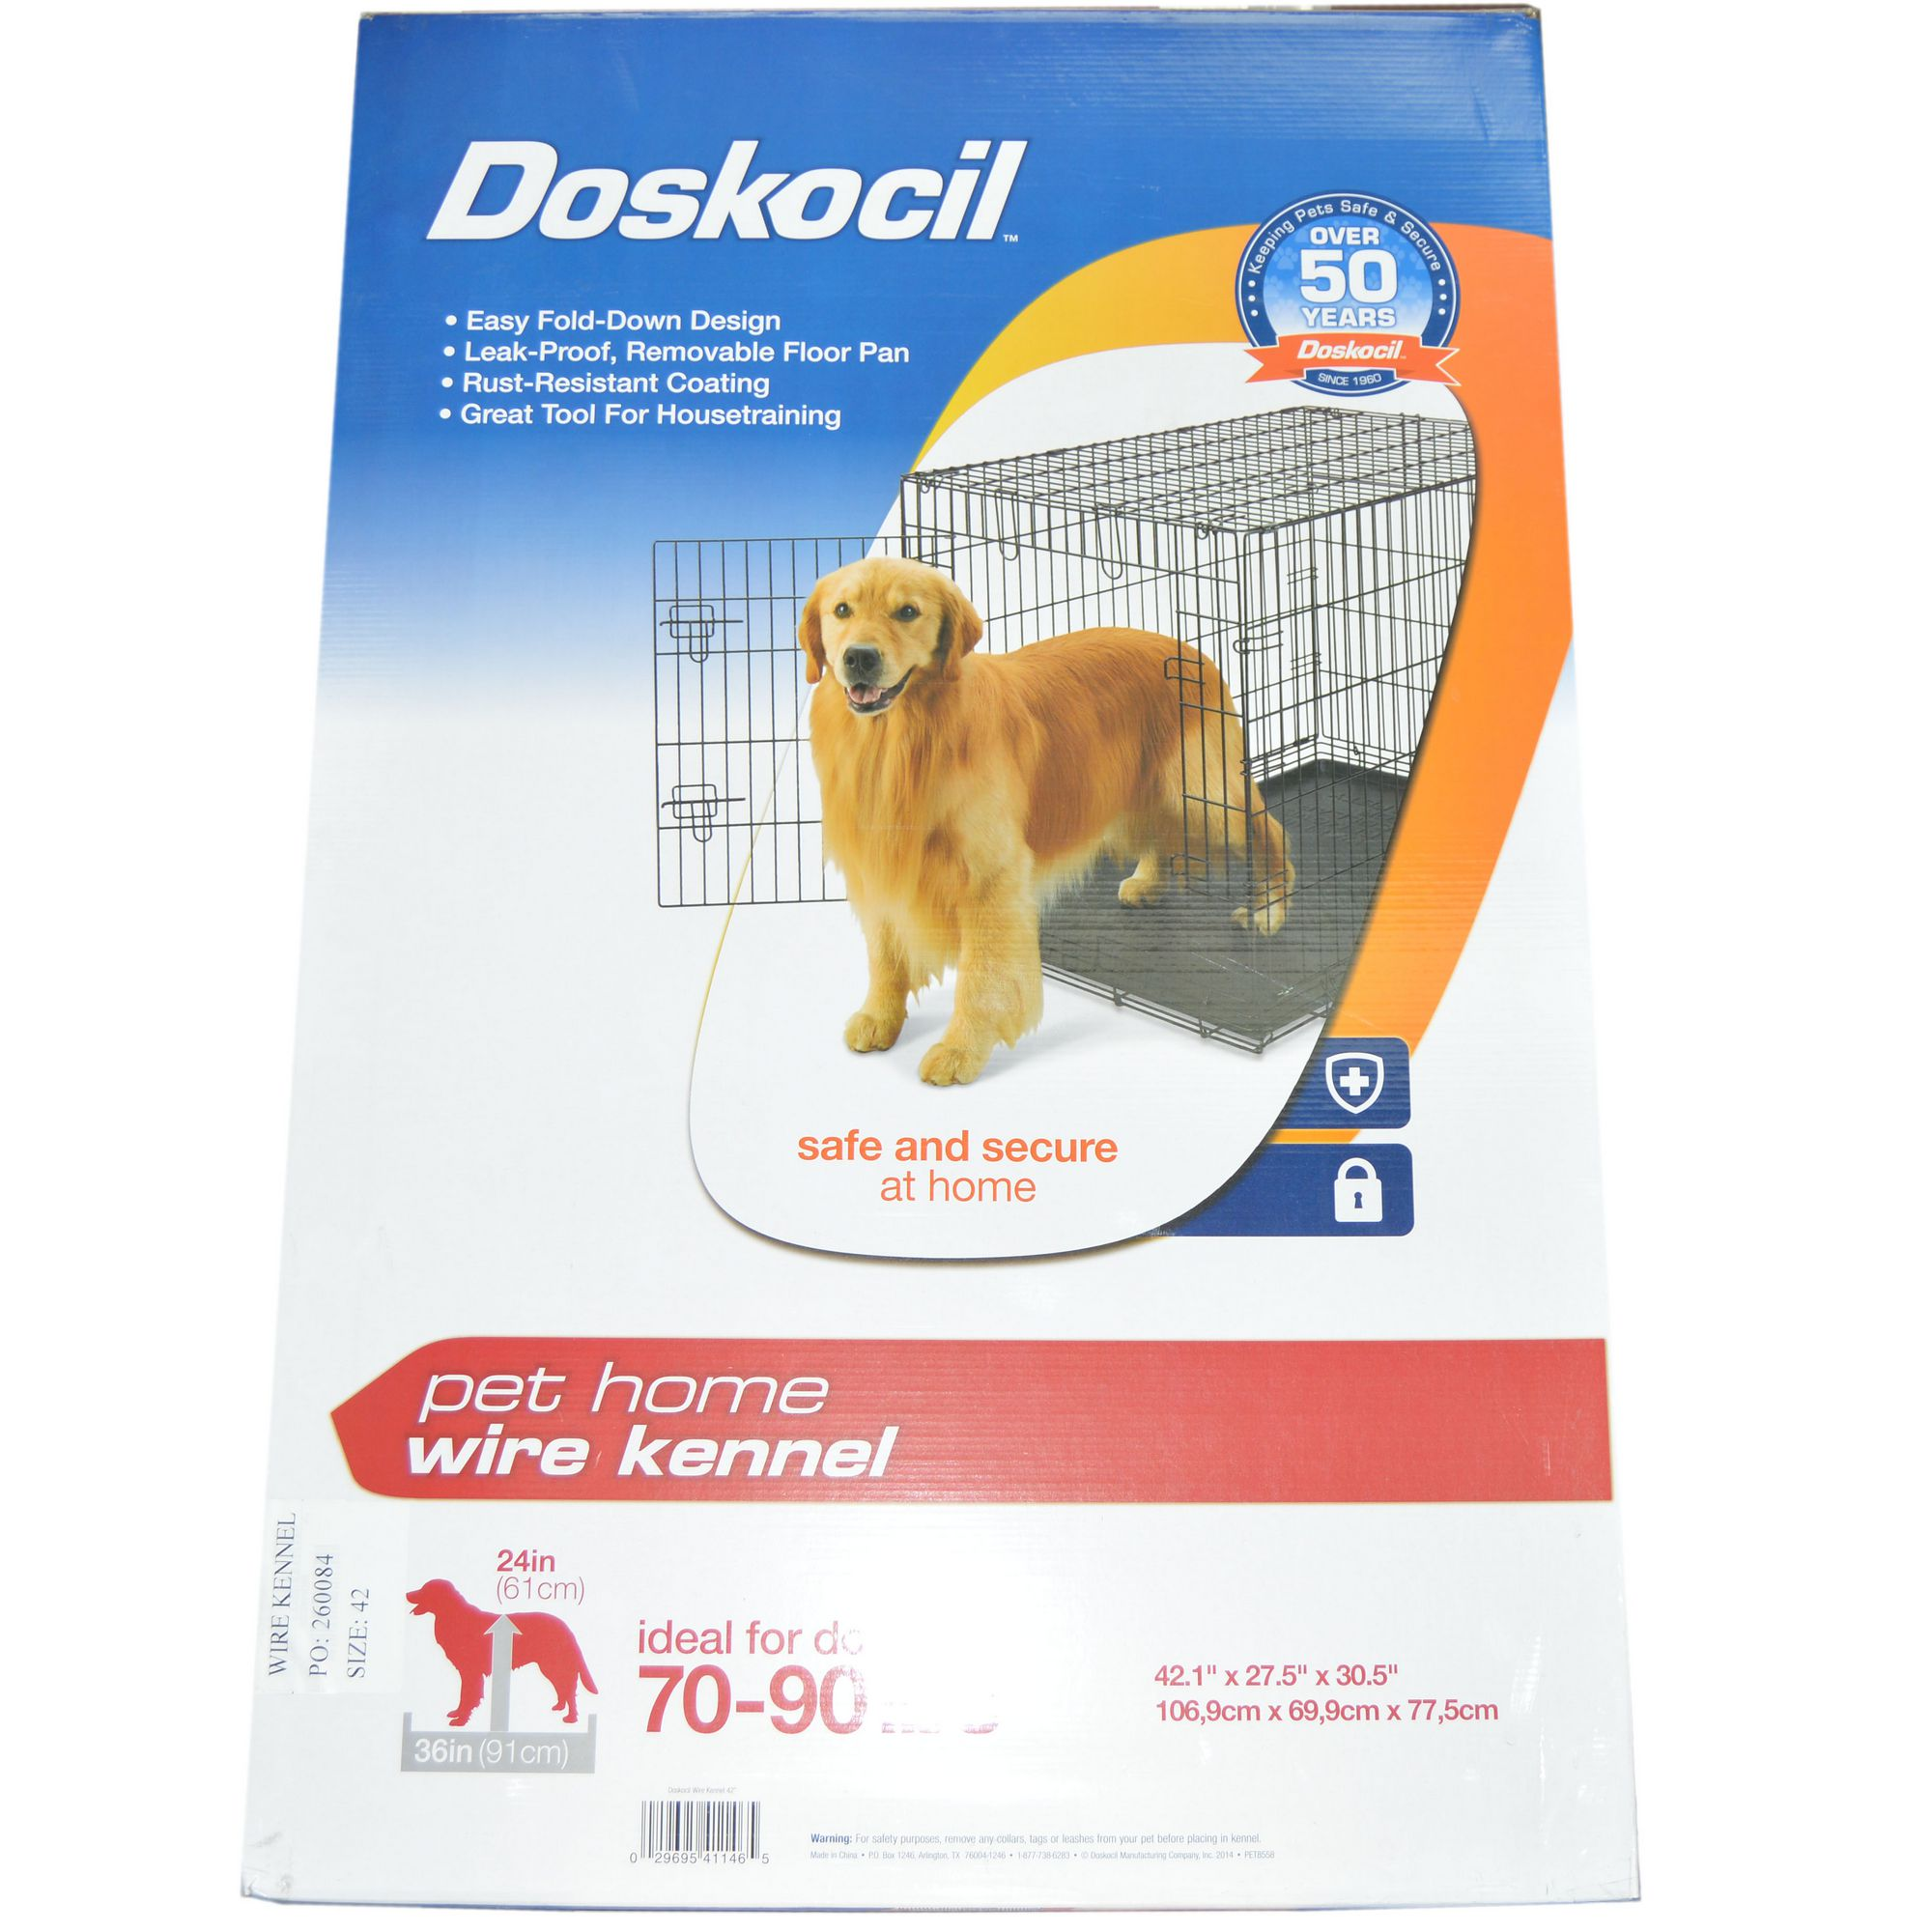 Doskocil Collapsible Dog Wire Metal Kennel/Crate 42.1 x 27.5 x 30.5 ...